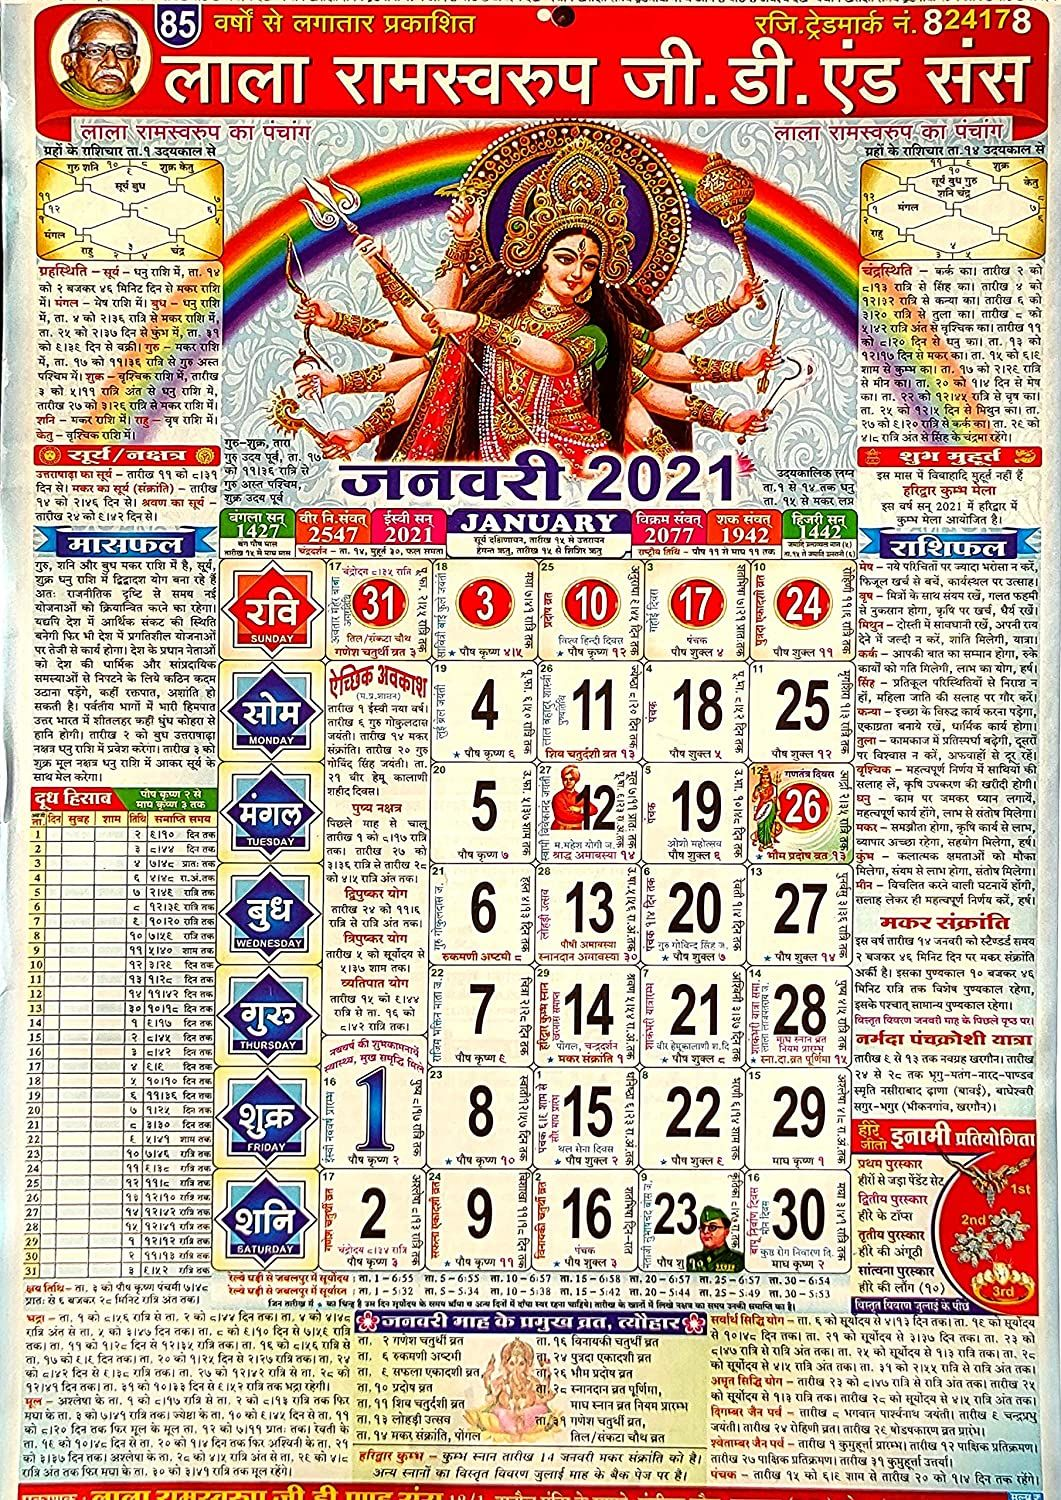 24 2021 Hindu Calendar Ideas Hindu Calendar Calendar Hanging Calendar Below is our 2021 yearly calendar for india with public holidays highlighted in red and today's date covered in green. 24 2021 hindu calendar ideas hindu